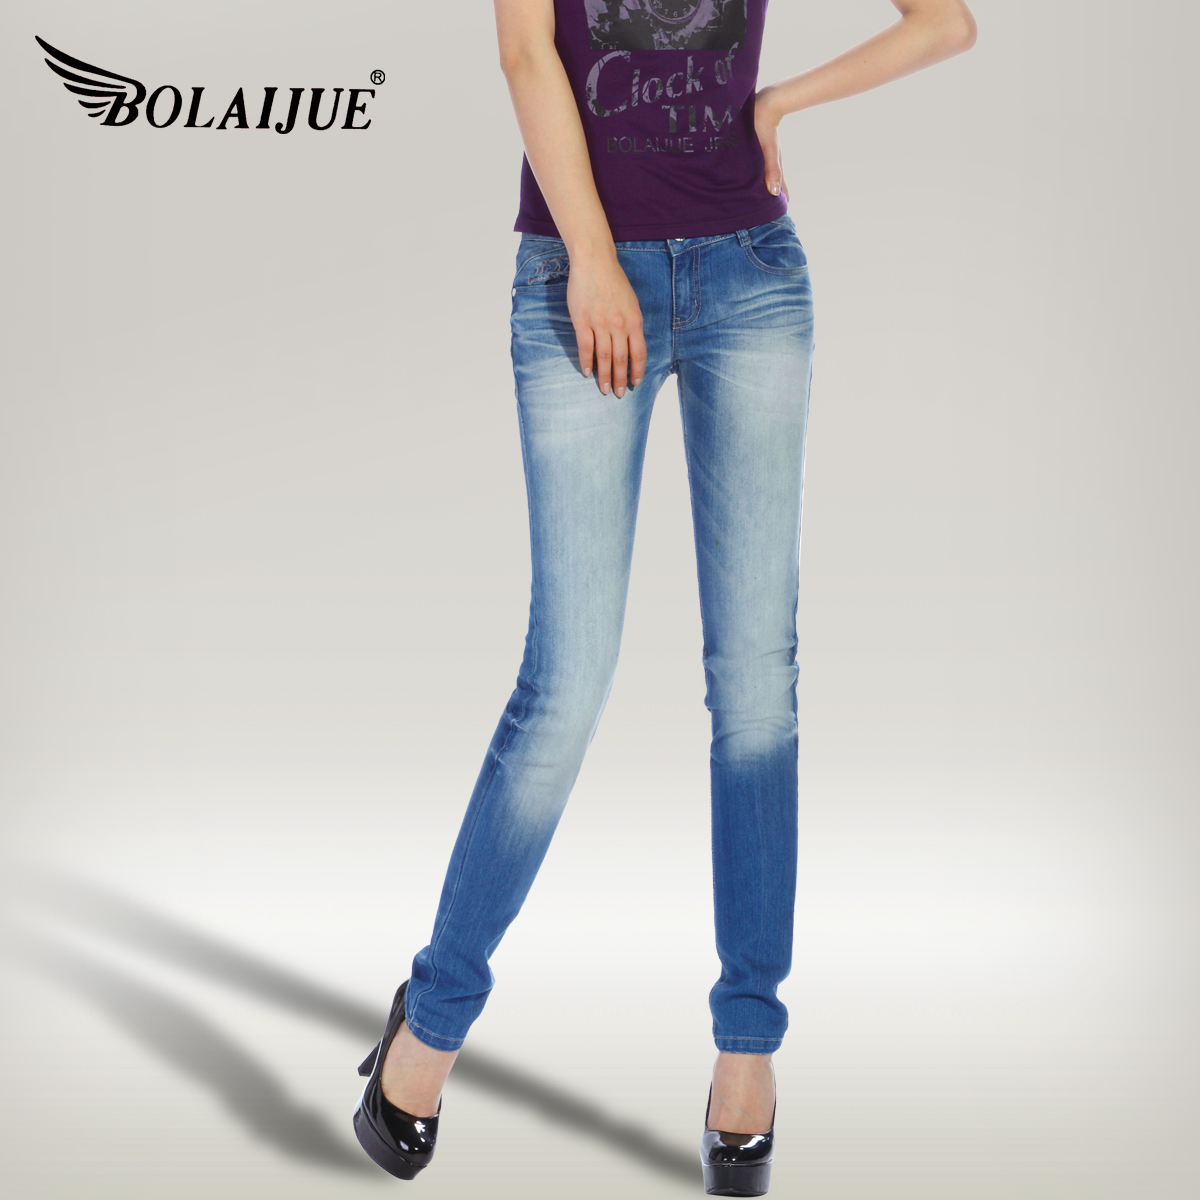 Bolaijue Spring New Arrival All Match Women 39 S Pleated Elastic Pencil Jeans Skinny Pants